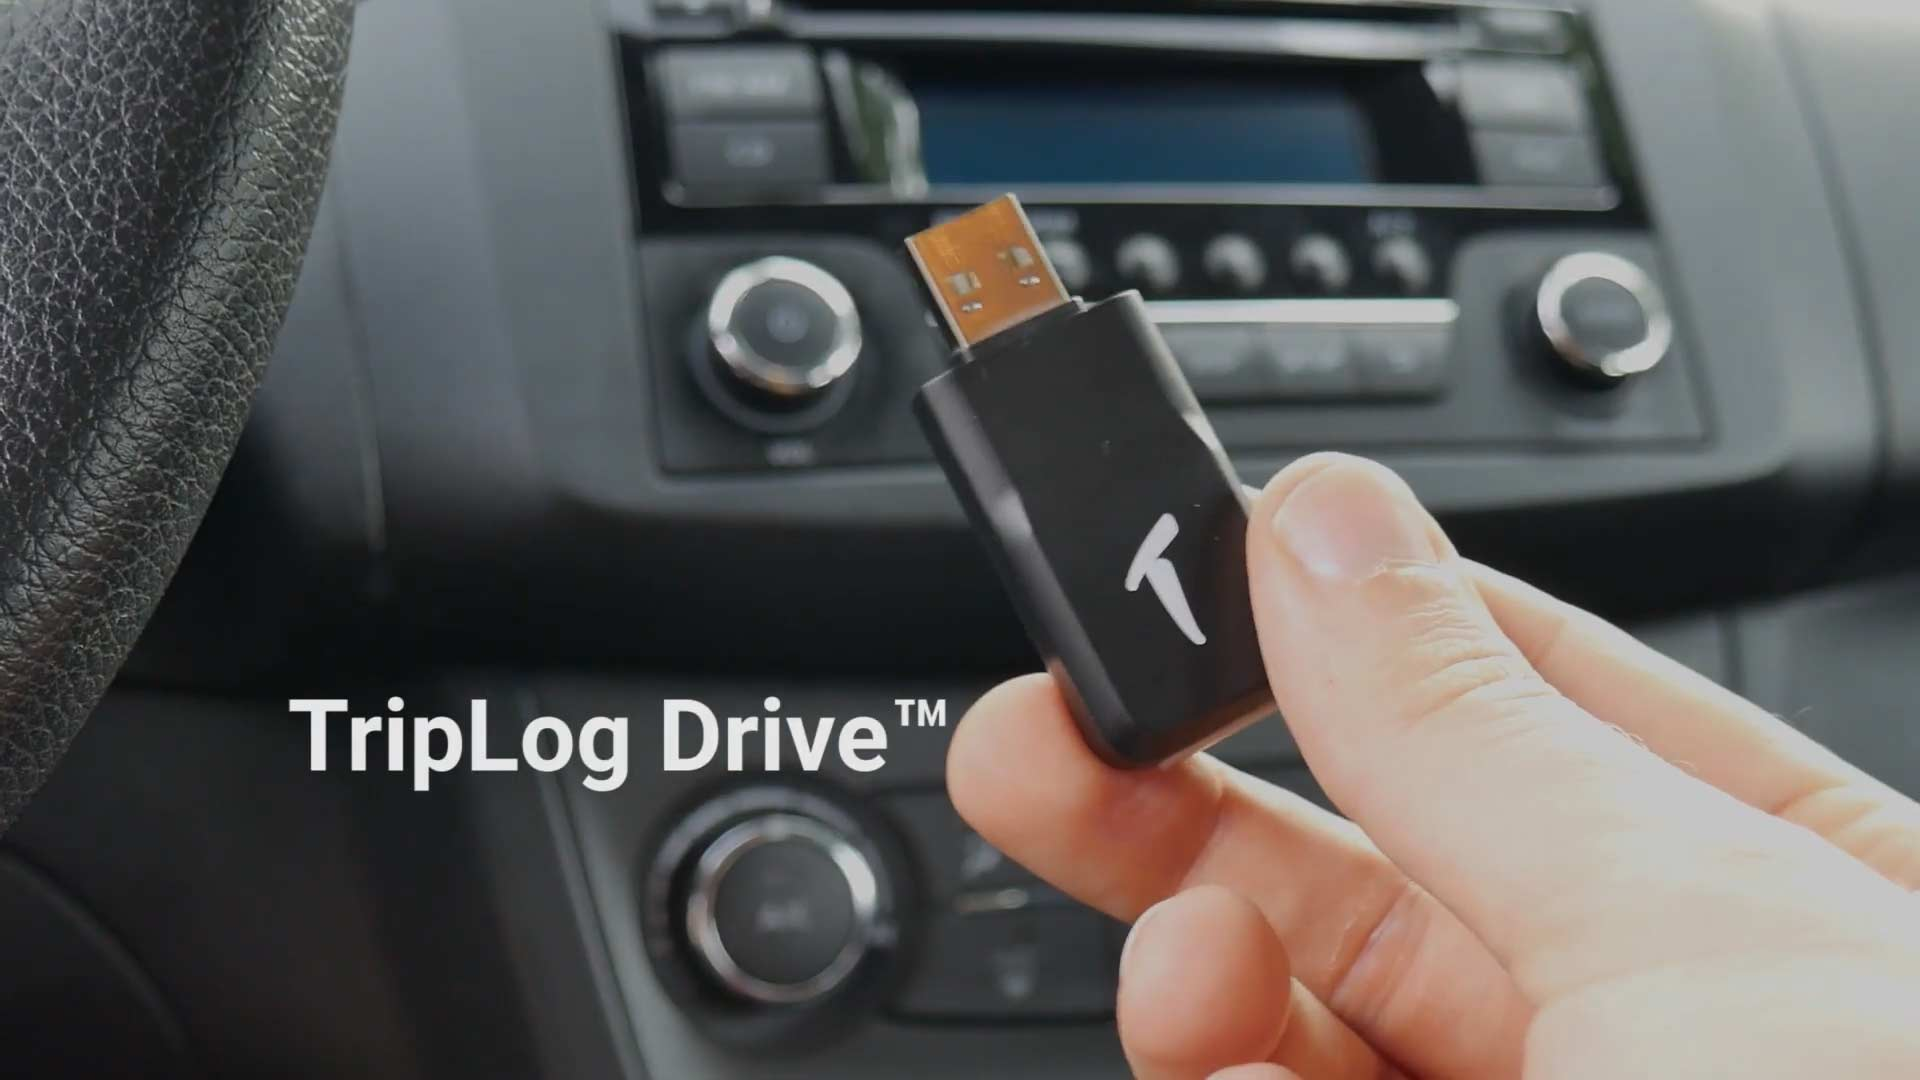 Introducing TripLog Drive™